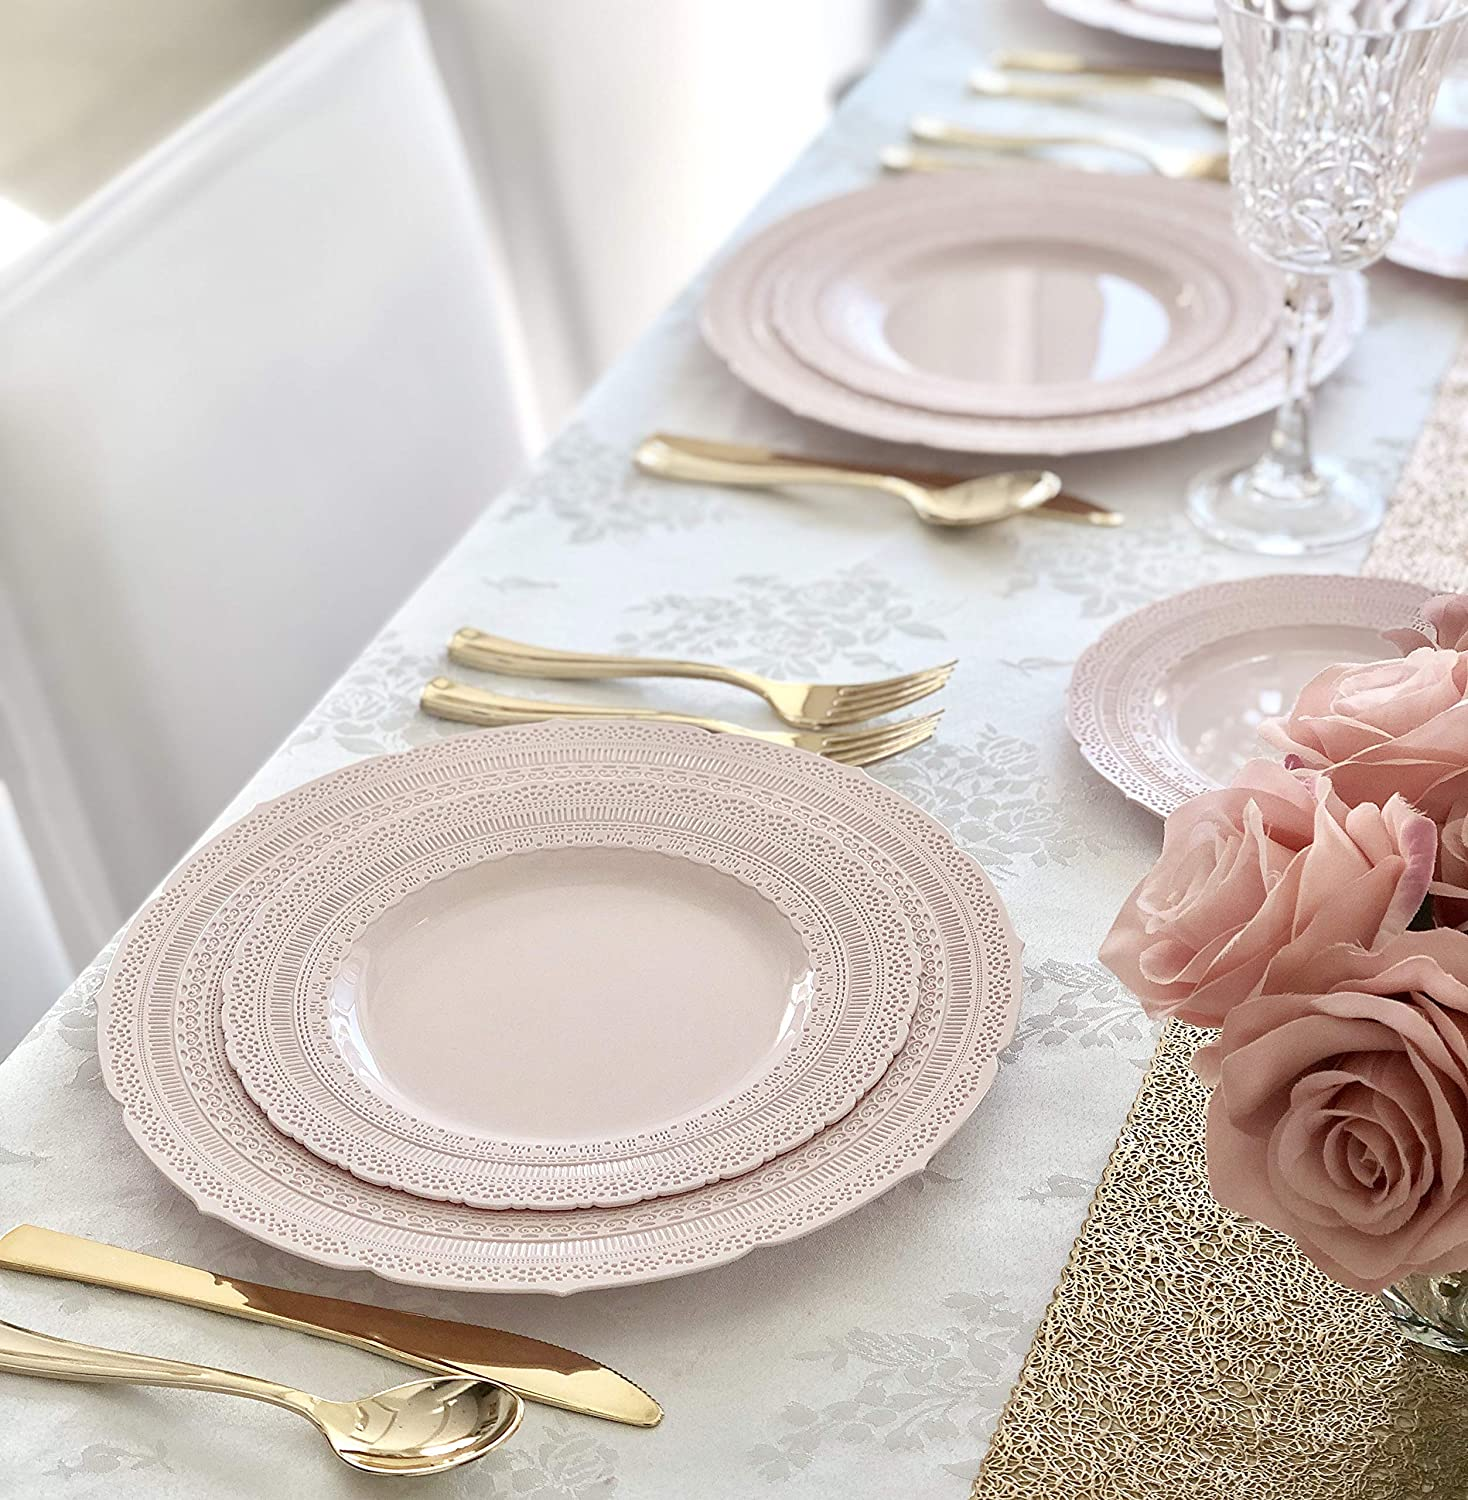 Linen Ivory and Gold 60 x 10.5 Dinner OCCASIONS 120 Pack Heavyweight Premium Disposable Plastic Plates Set 60 x 7.5 Salad//dessert